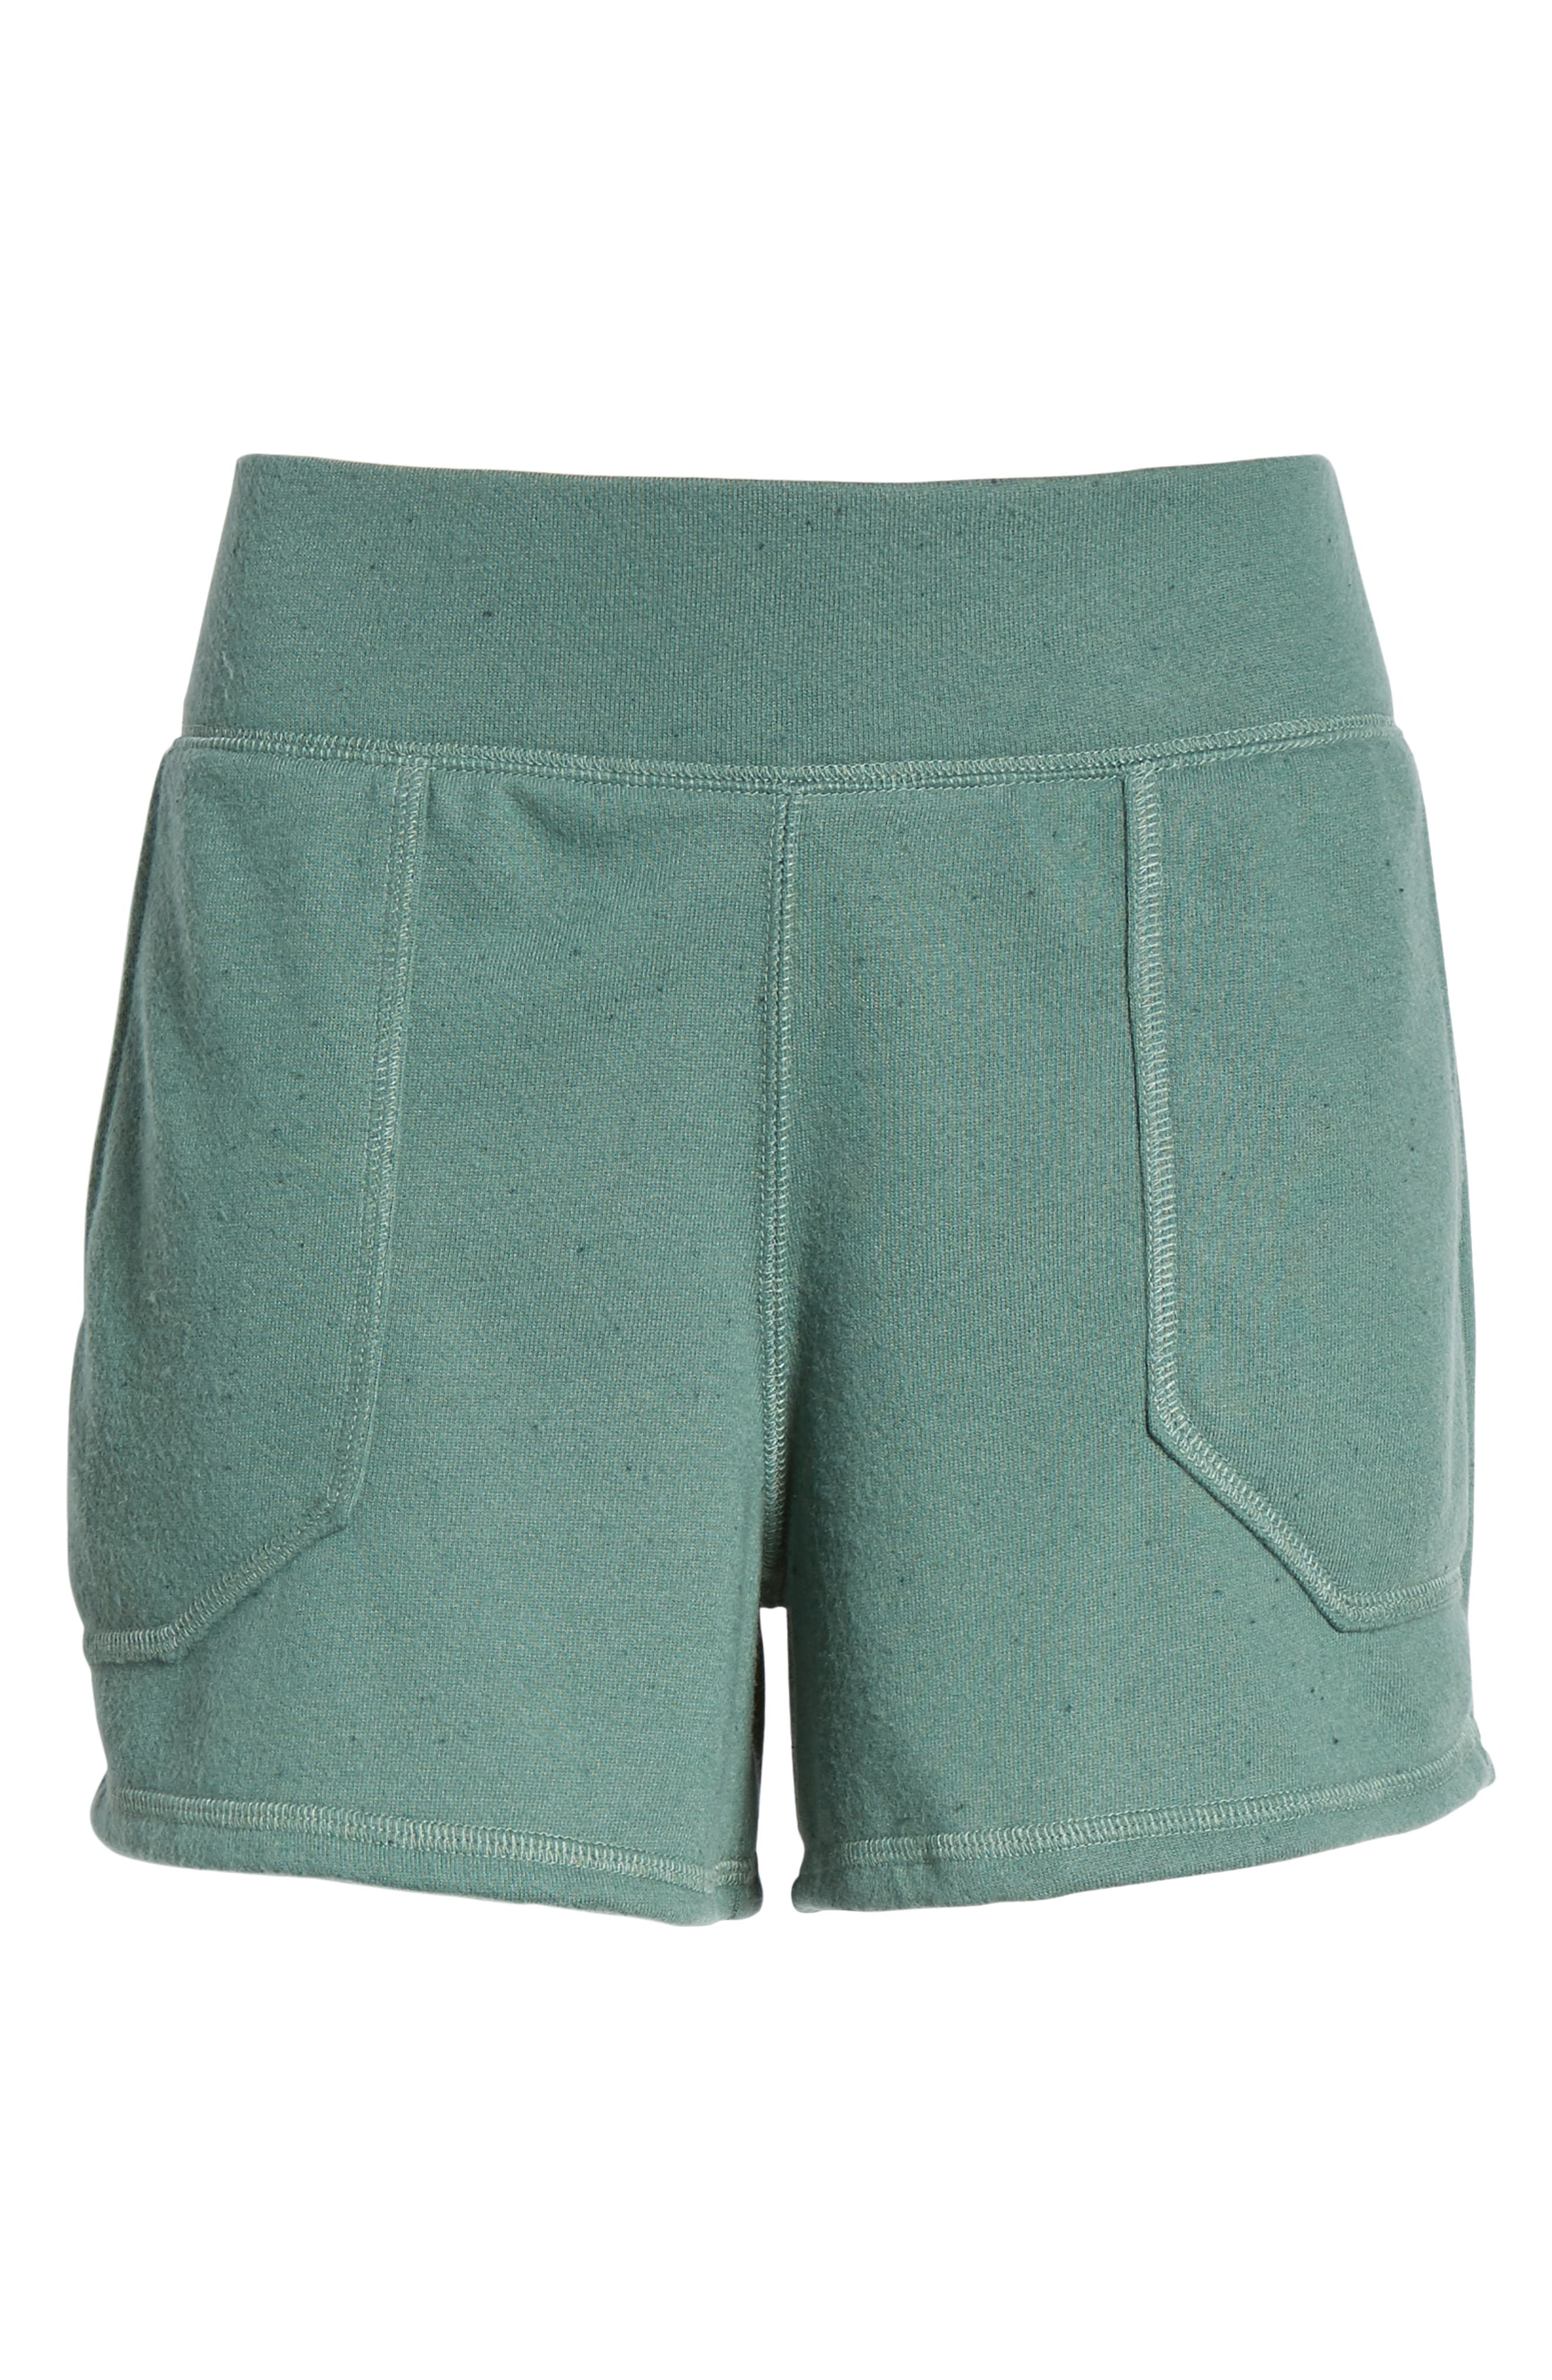 Off-Duty French Terry Shorts,                             Alternate thumbnail 29, color,